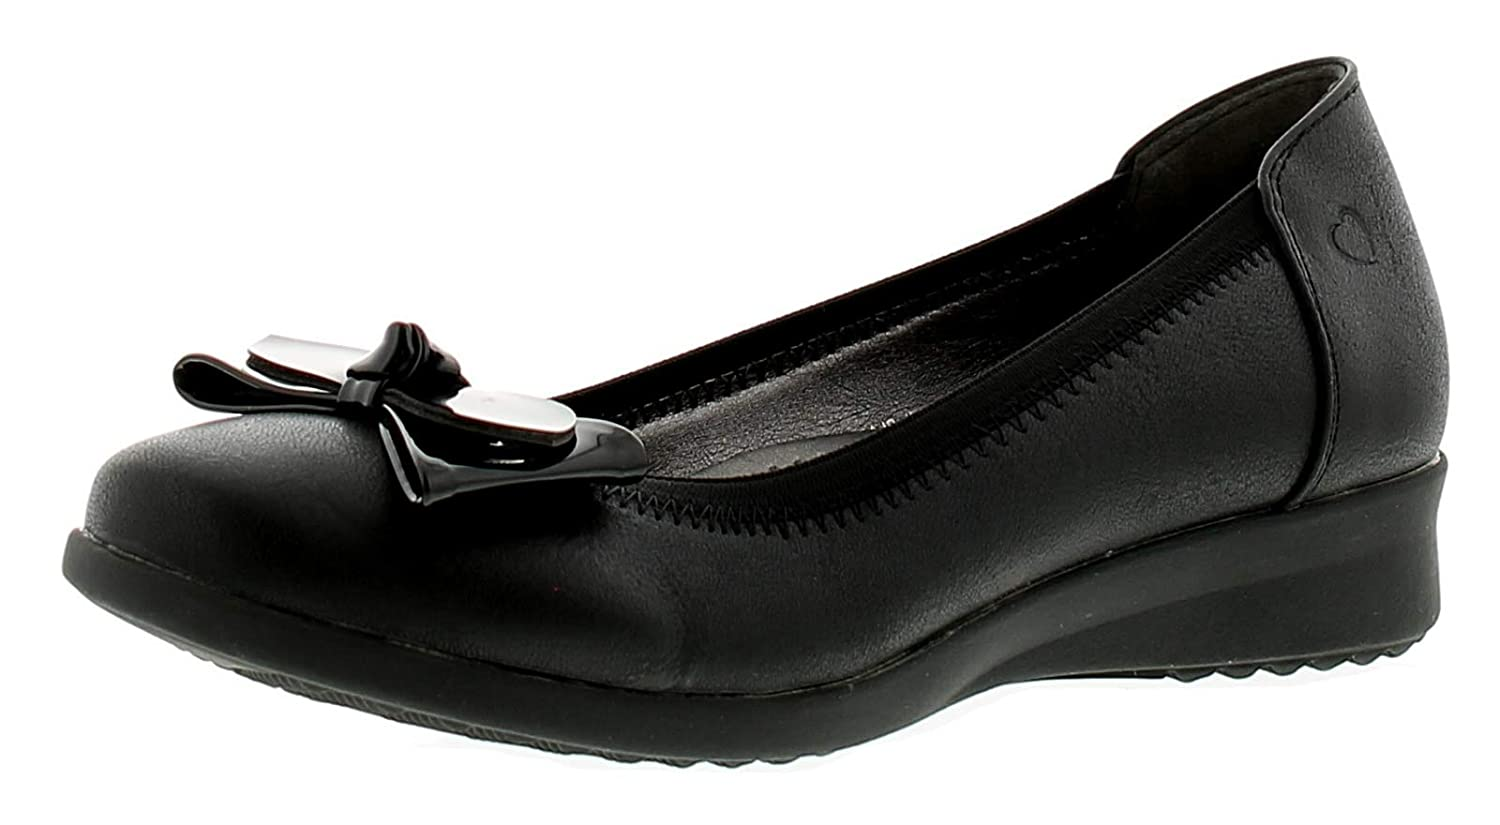 84db30665b44 Heavenly Feet Annabel Womens Ladies Flats Shoes Black - Black - UK Sizes  3-8: Amazon.co.uk: Shoes & Bags